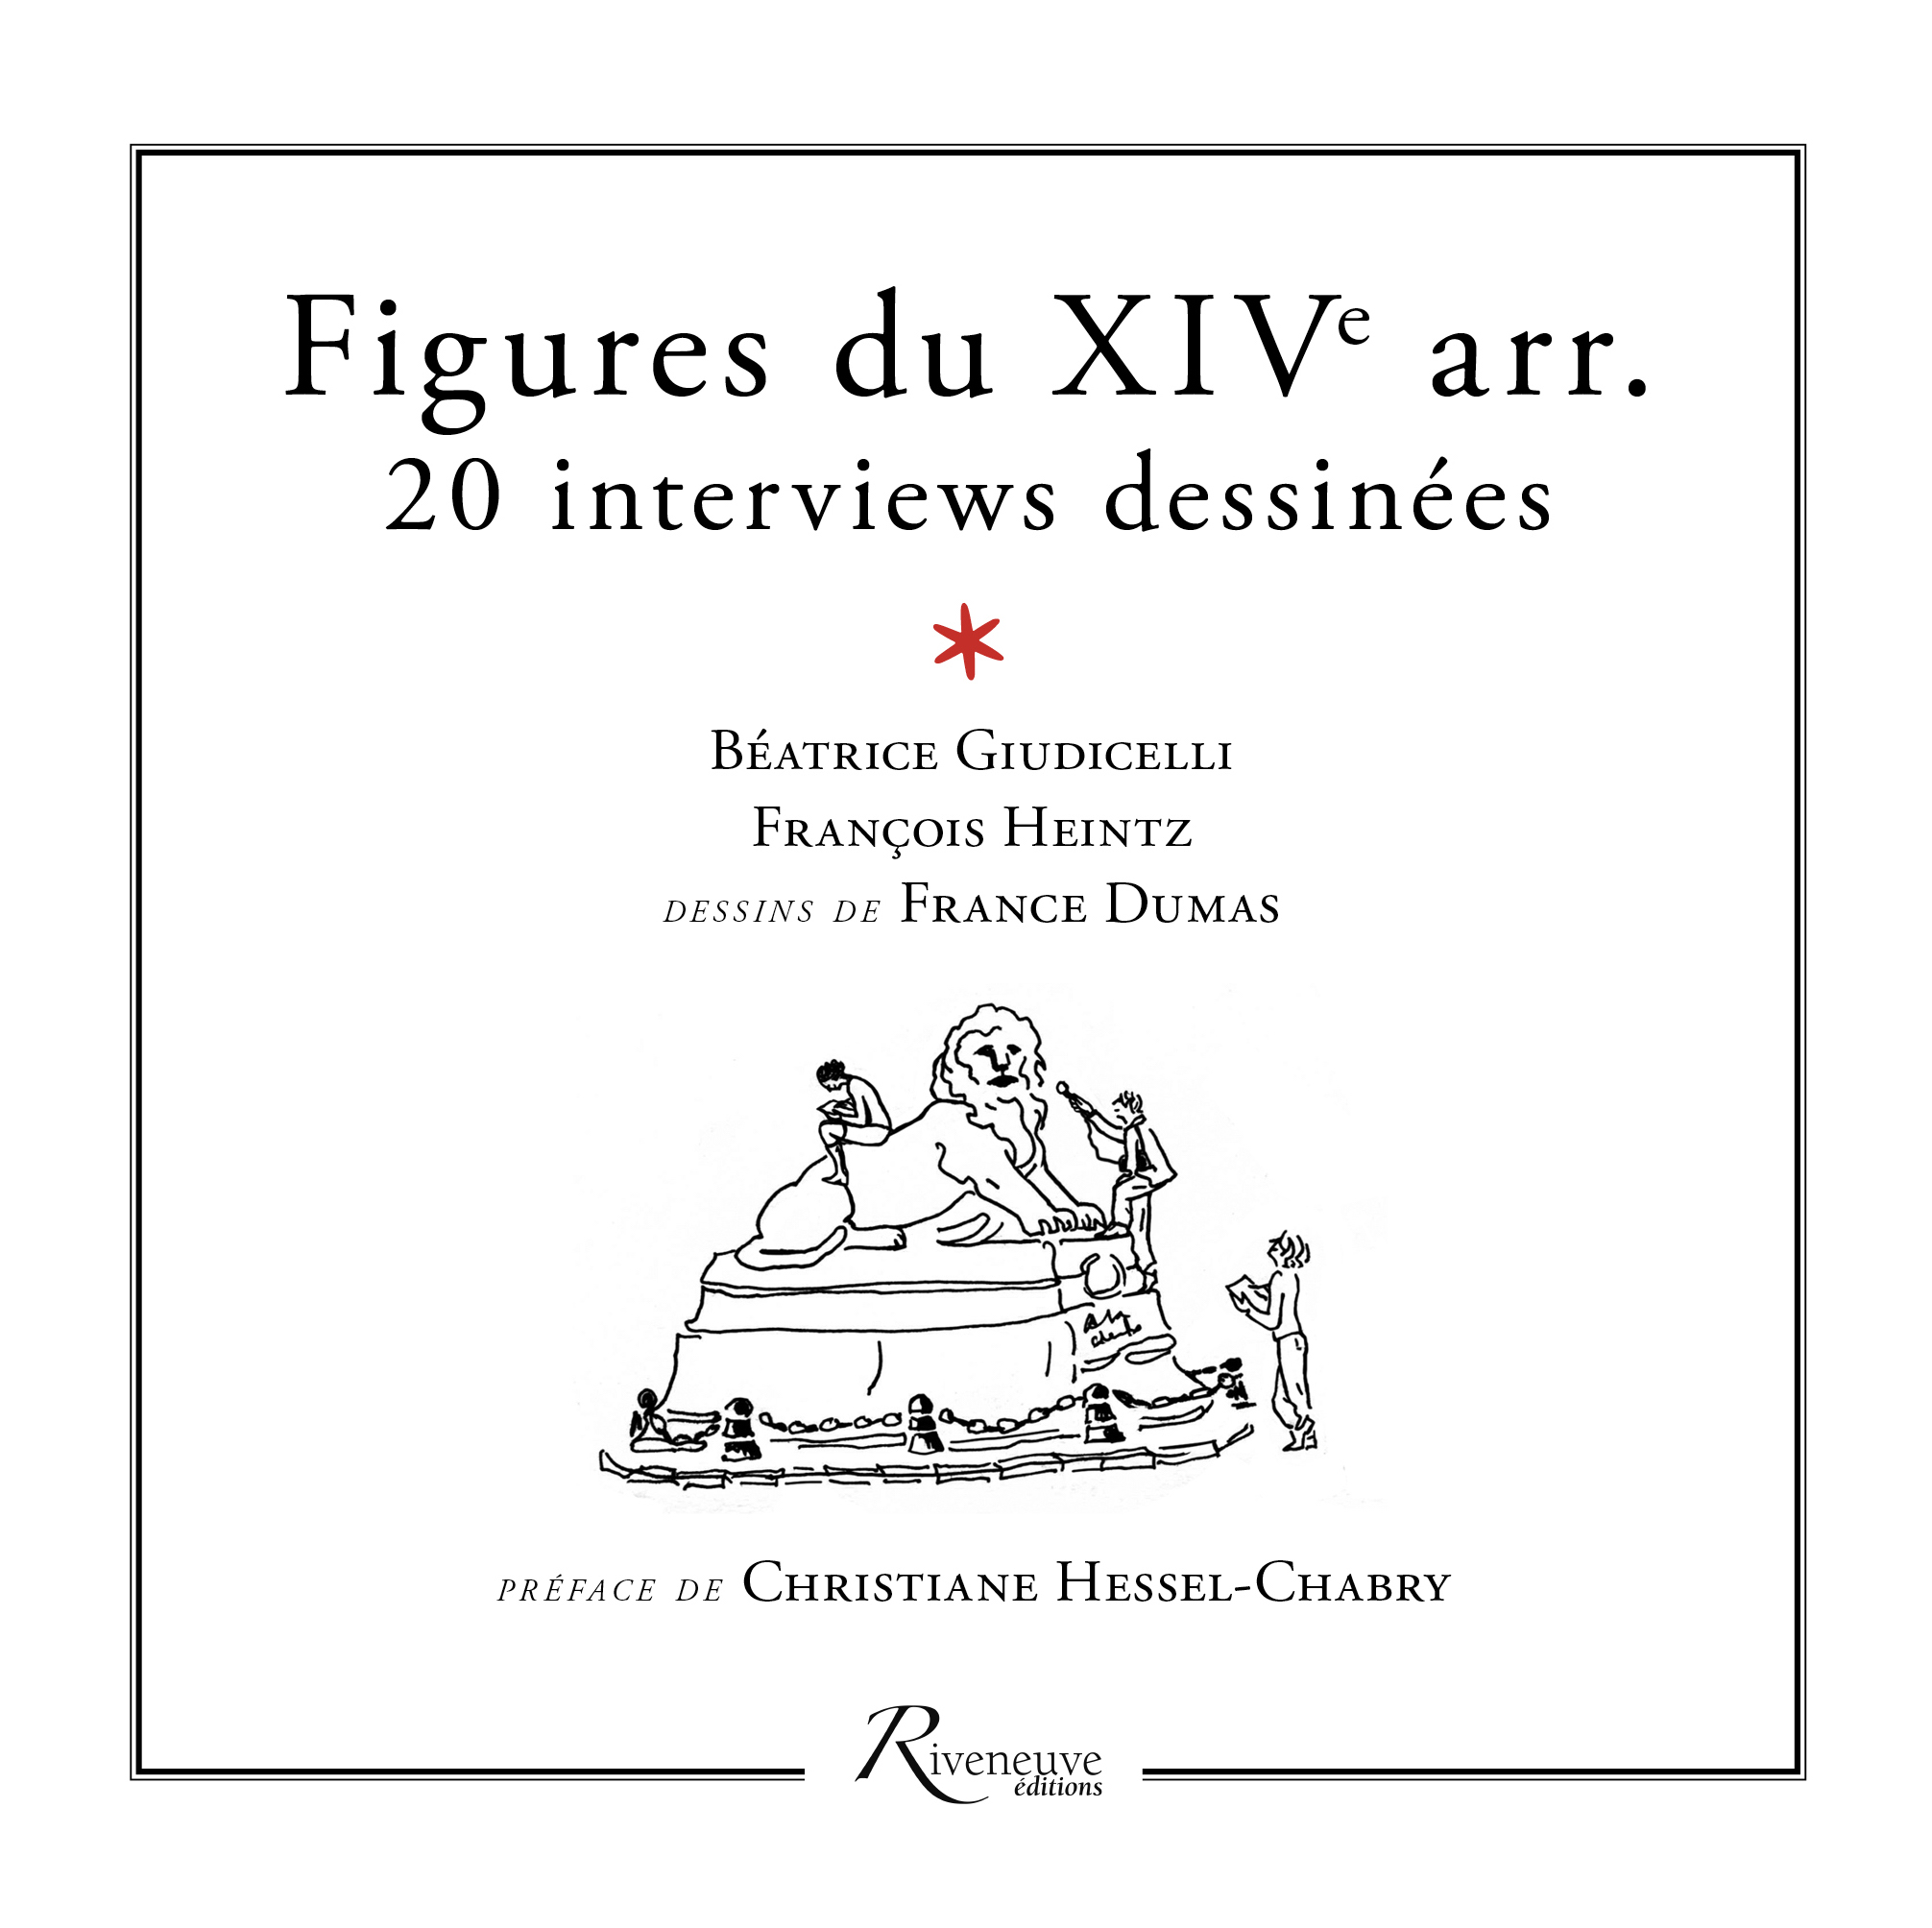 Figures du XIVe arrondissement. 20 interviews dessinées